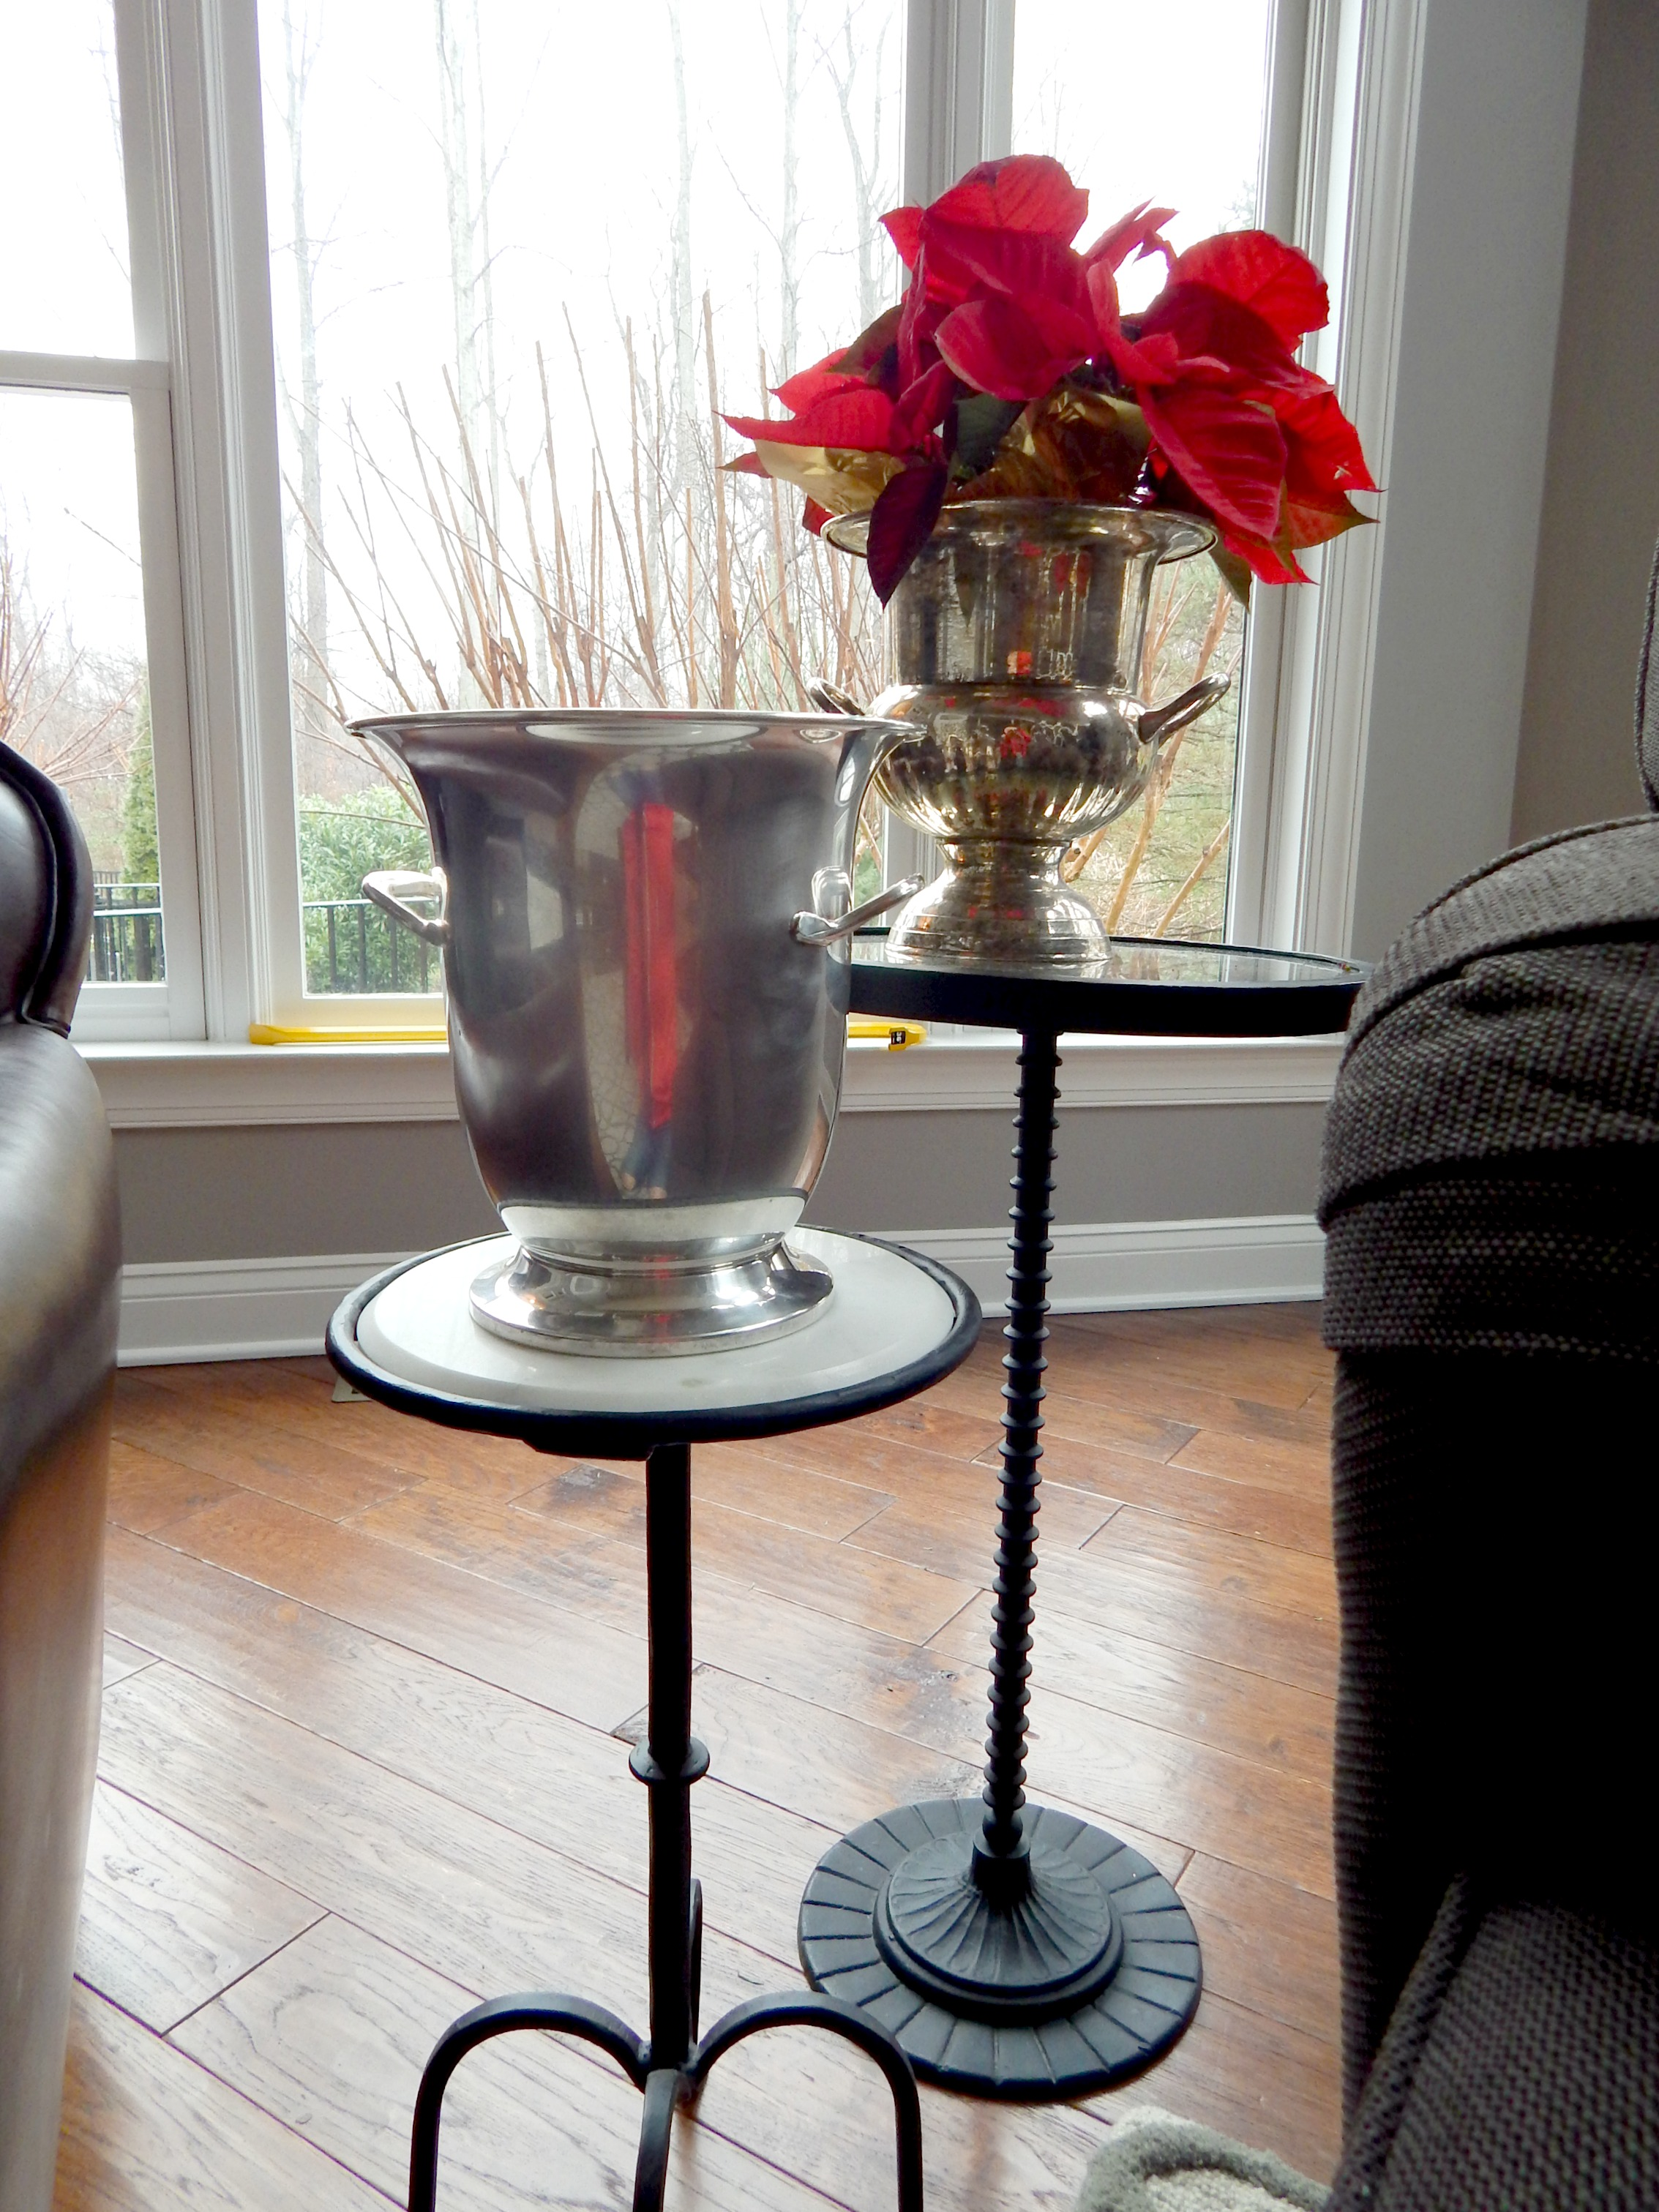 How To Decorate With Goodwill Bargains To Create An